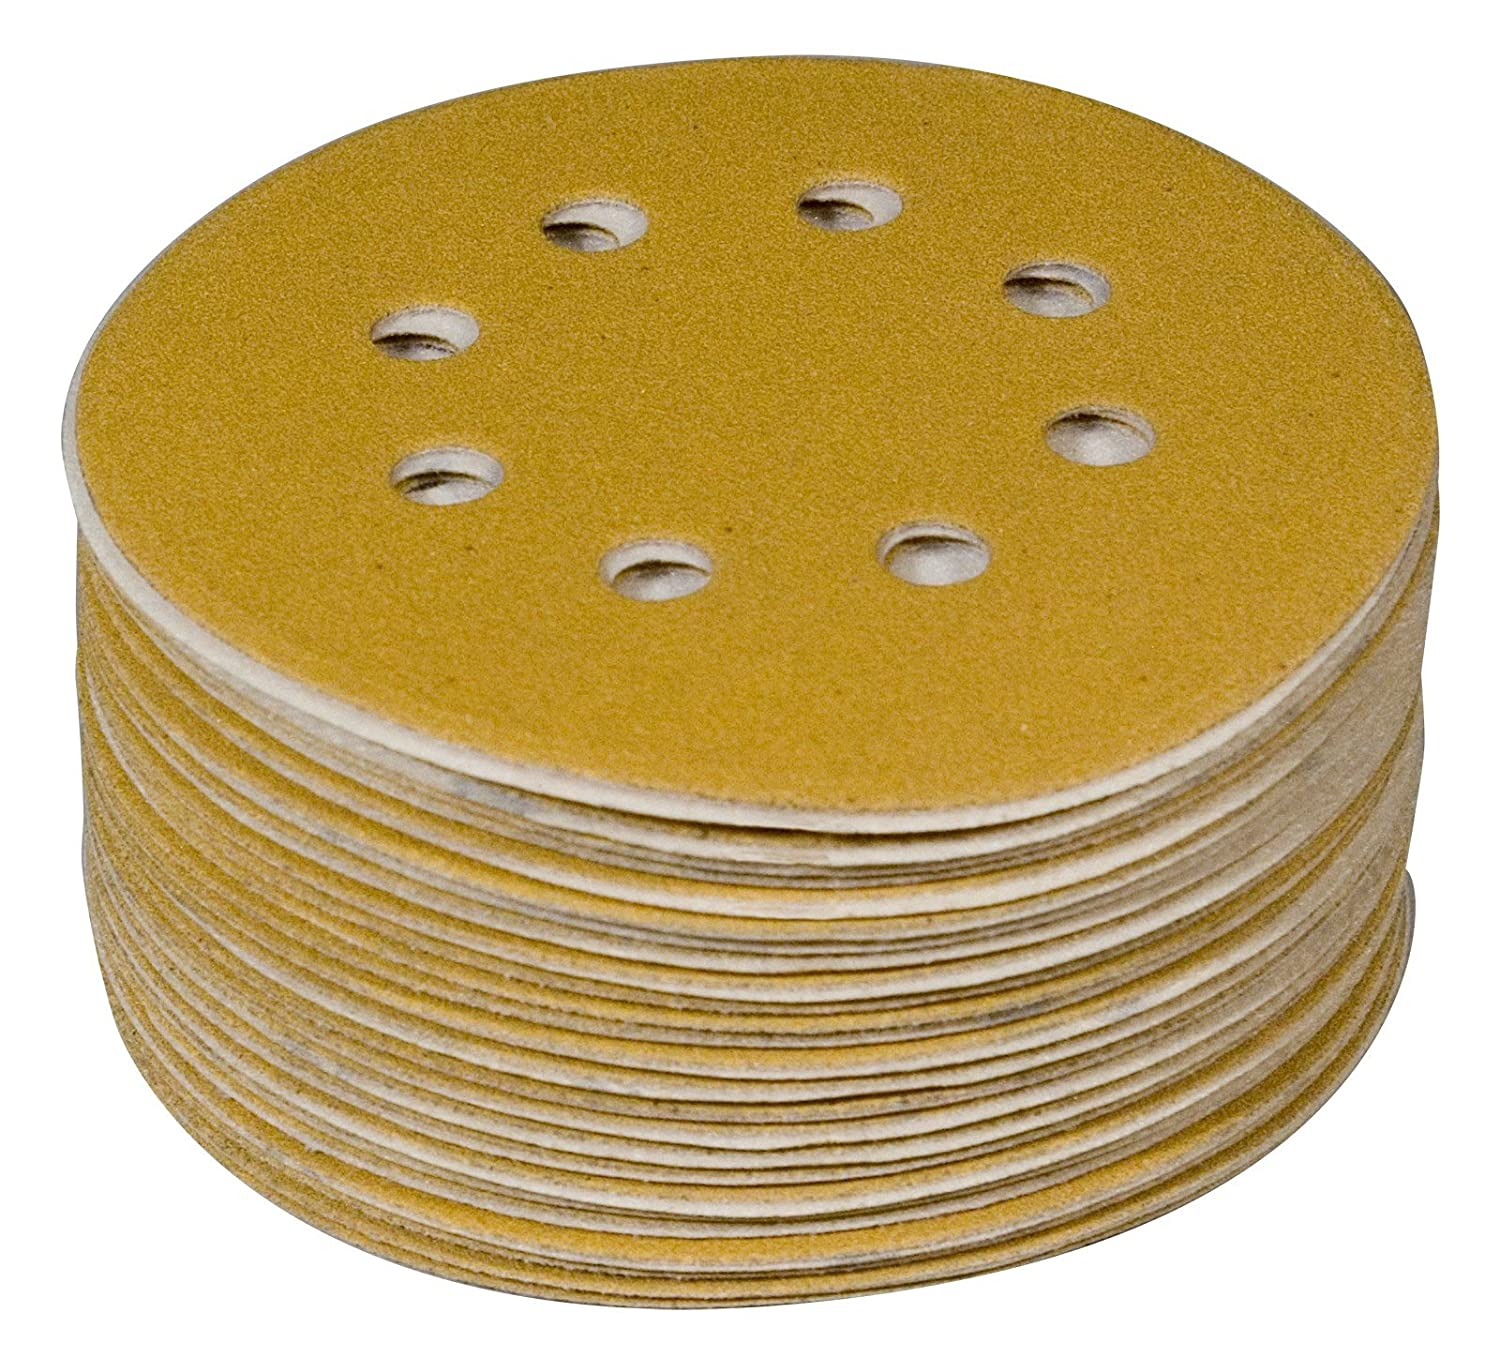 B01M6CI1V4 POWERTEC 44022G-50 Gold 5 Hook and Loop Sanding Disc | 8 Hole | 220 Grit – 50 Pack 81t8OvDHIEL